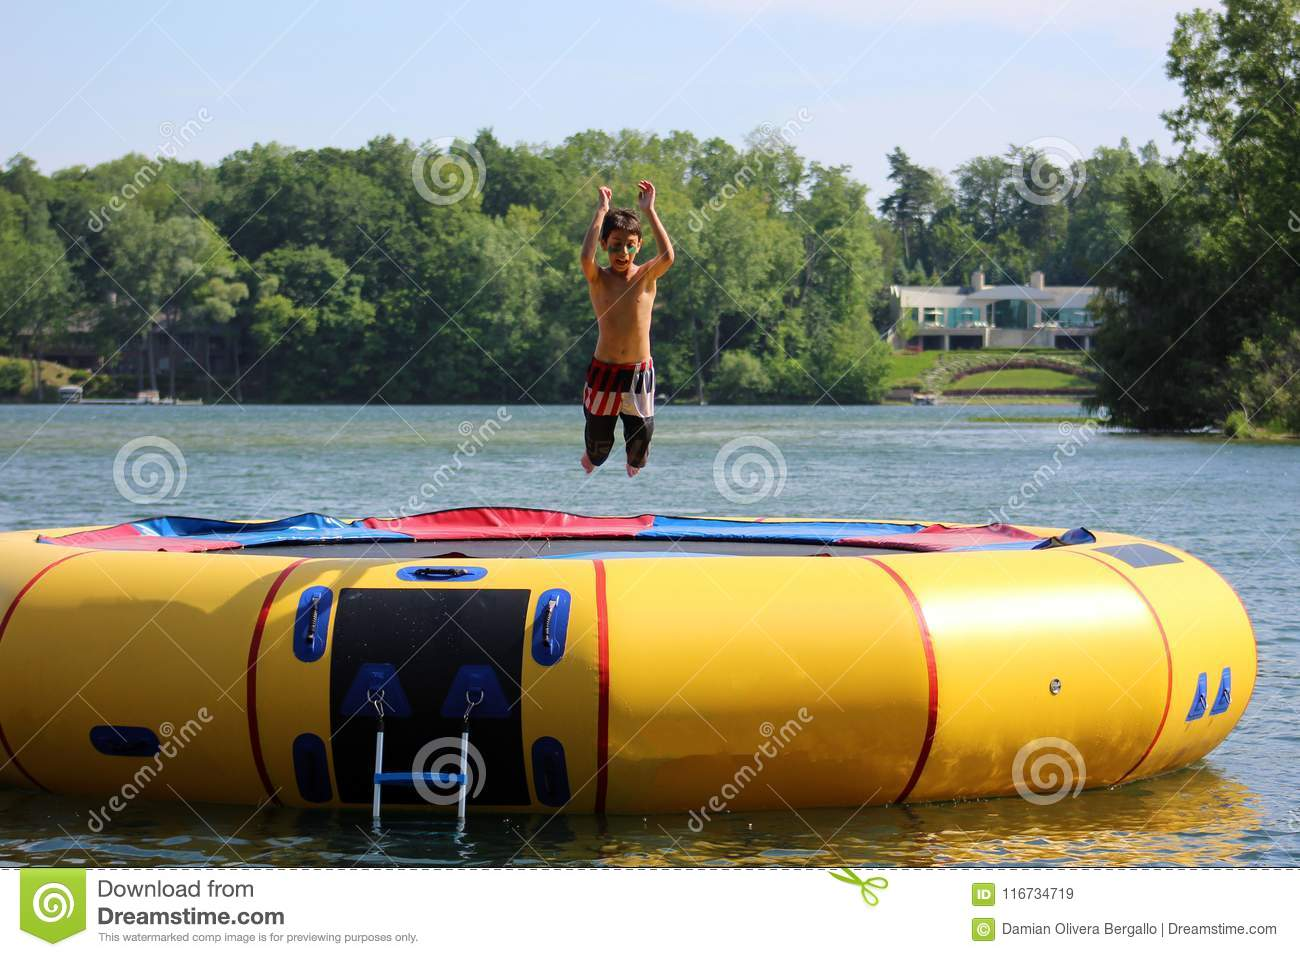 Handsome cute boy jumping at a water trampoline floating in a lake in Michigan during summer.